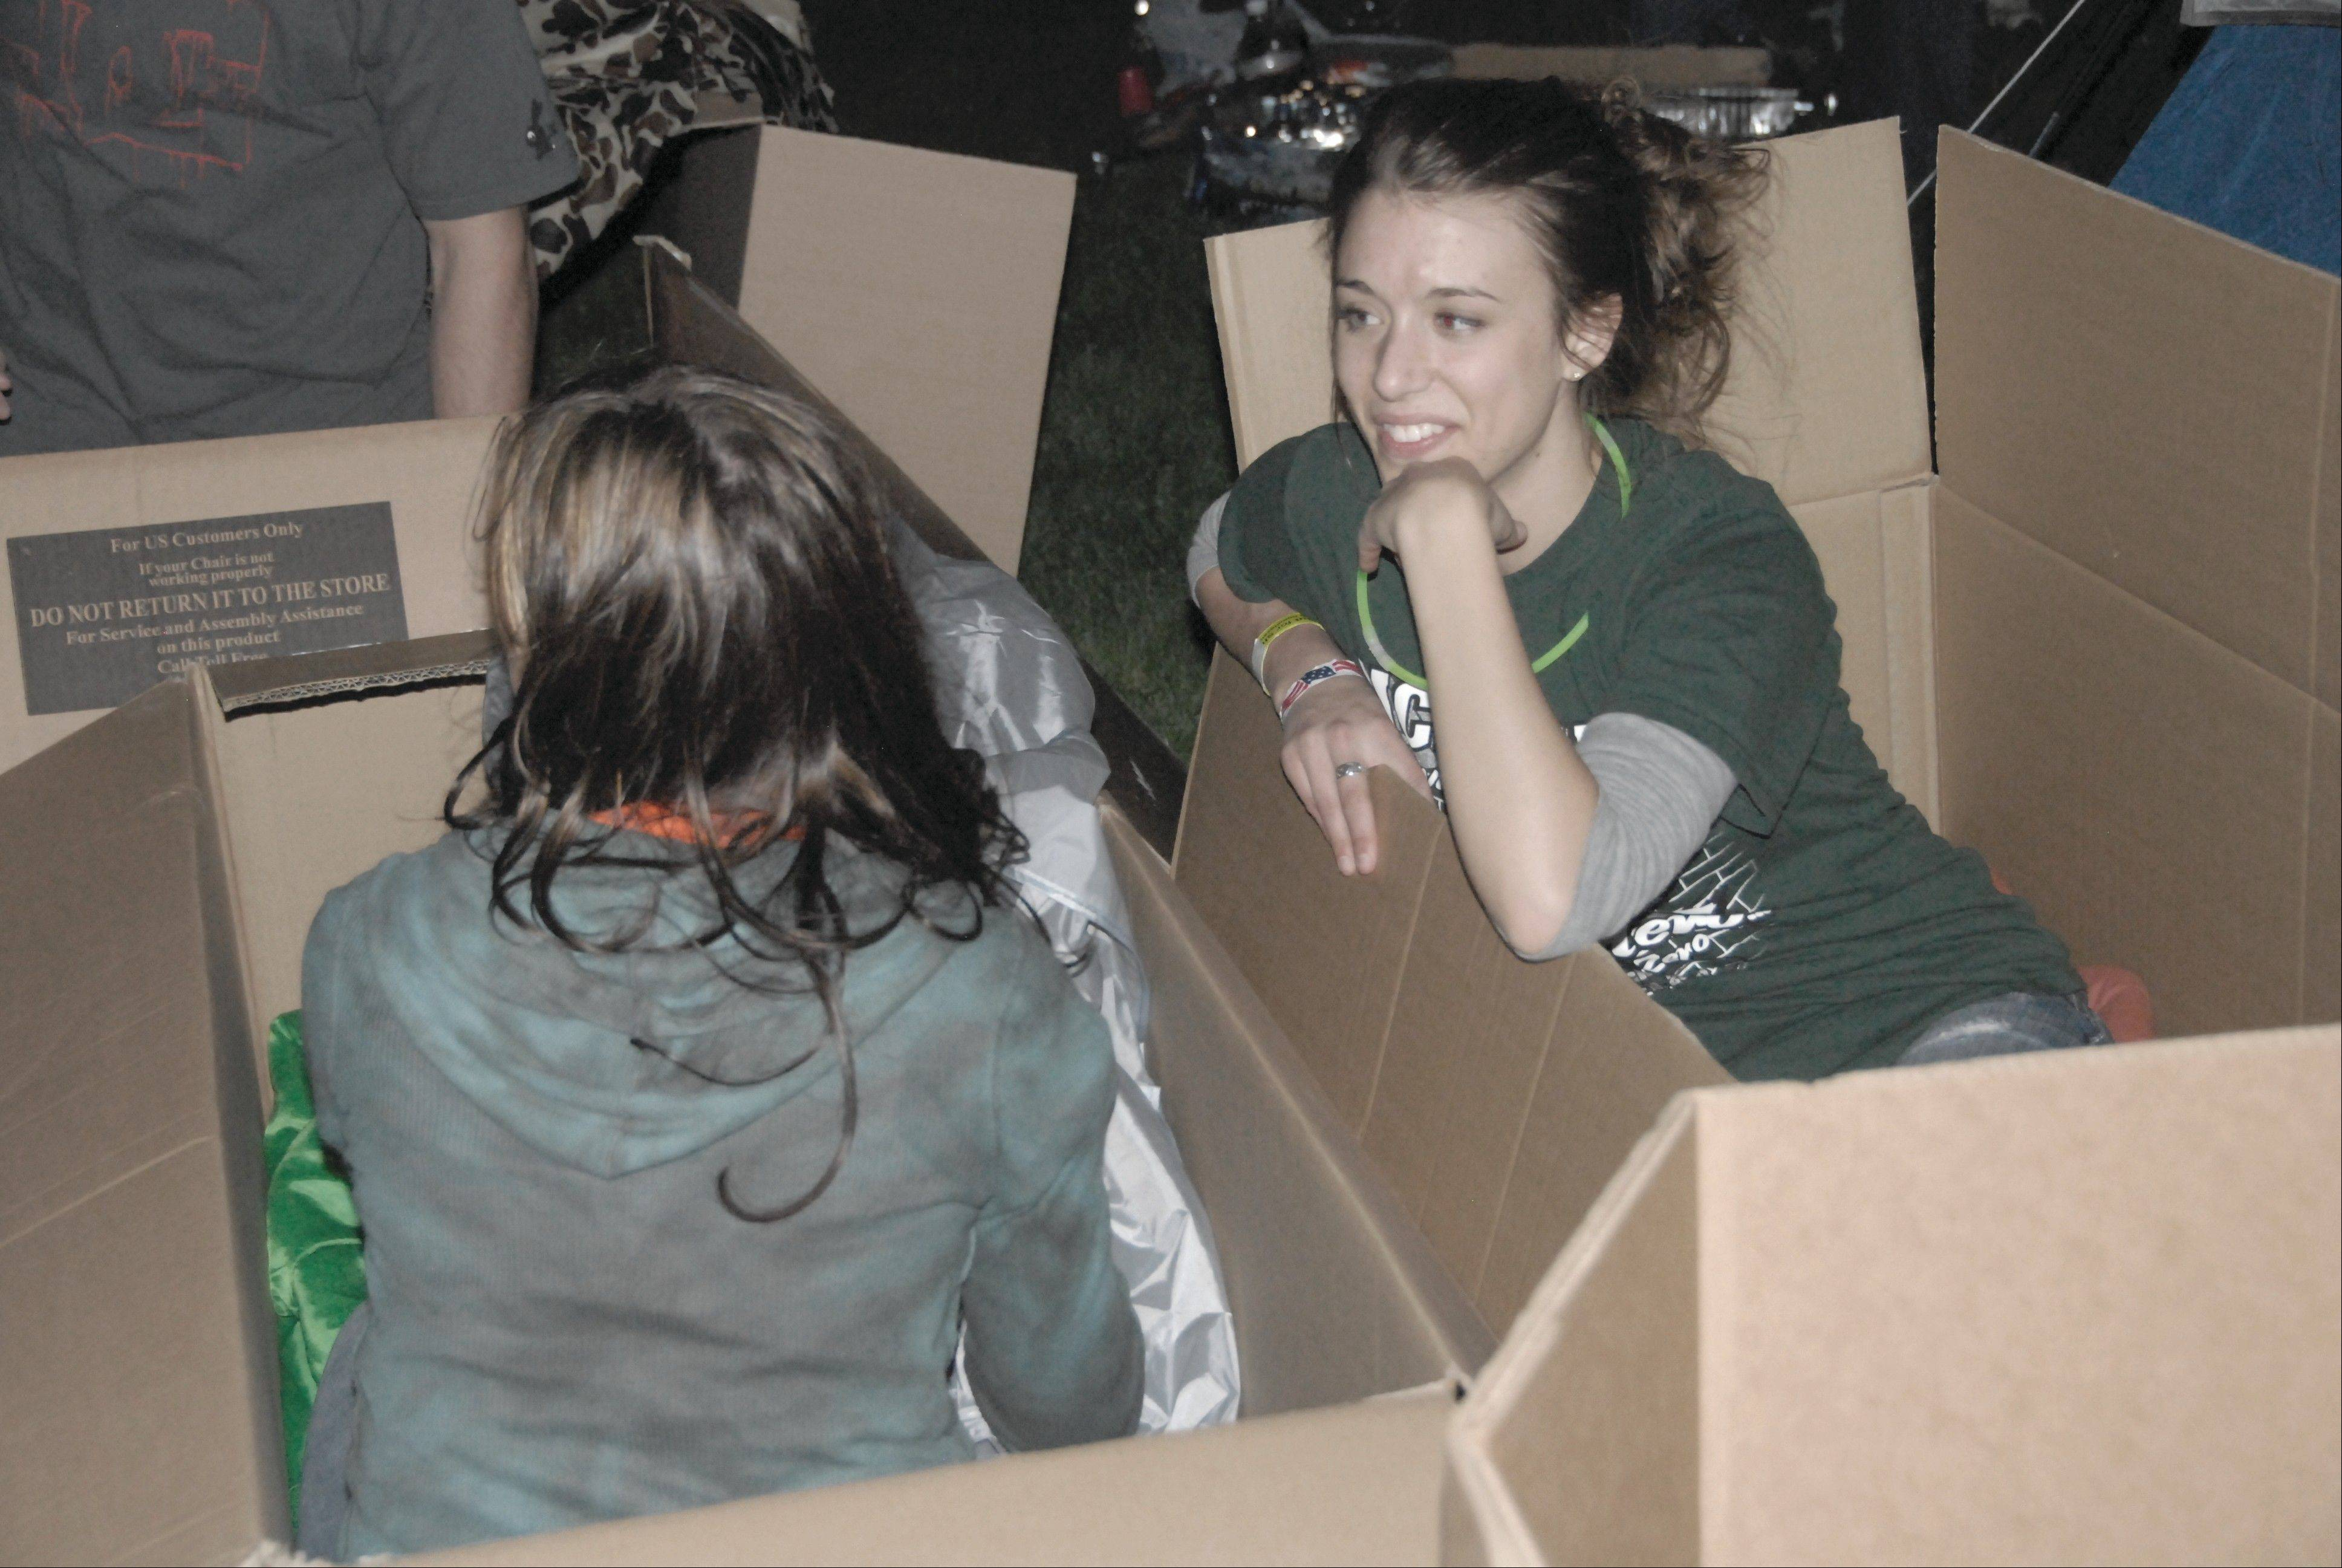 Participants take part in activities at a McHenry County PADS SleepOut for Shelter event. This year, PADS Lake County is partnering up with McHenry County PADS and holding its first SleepOut at Carmel High School May 11, the same day as this year�s McHenry event.